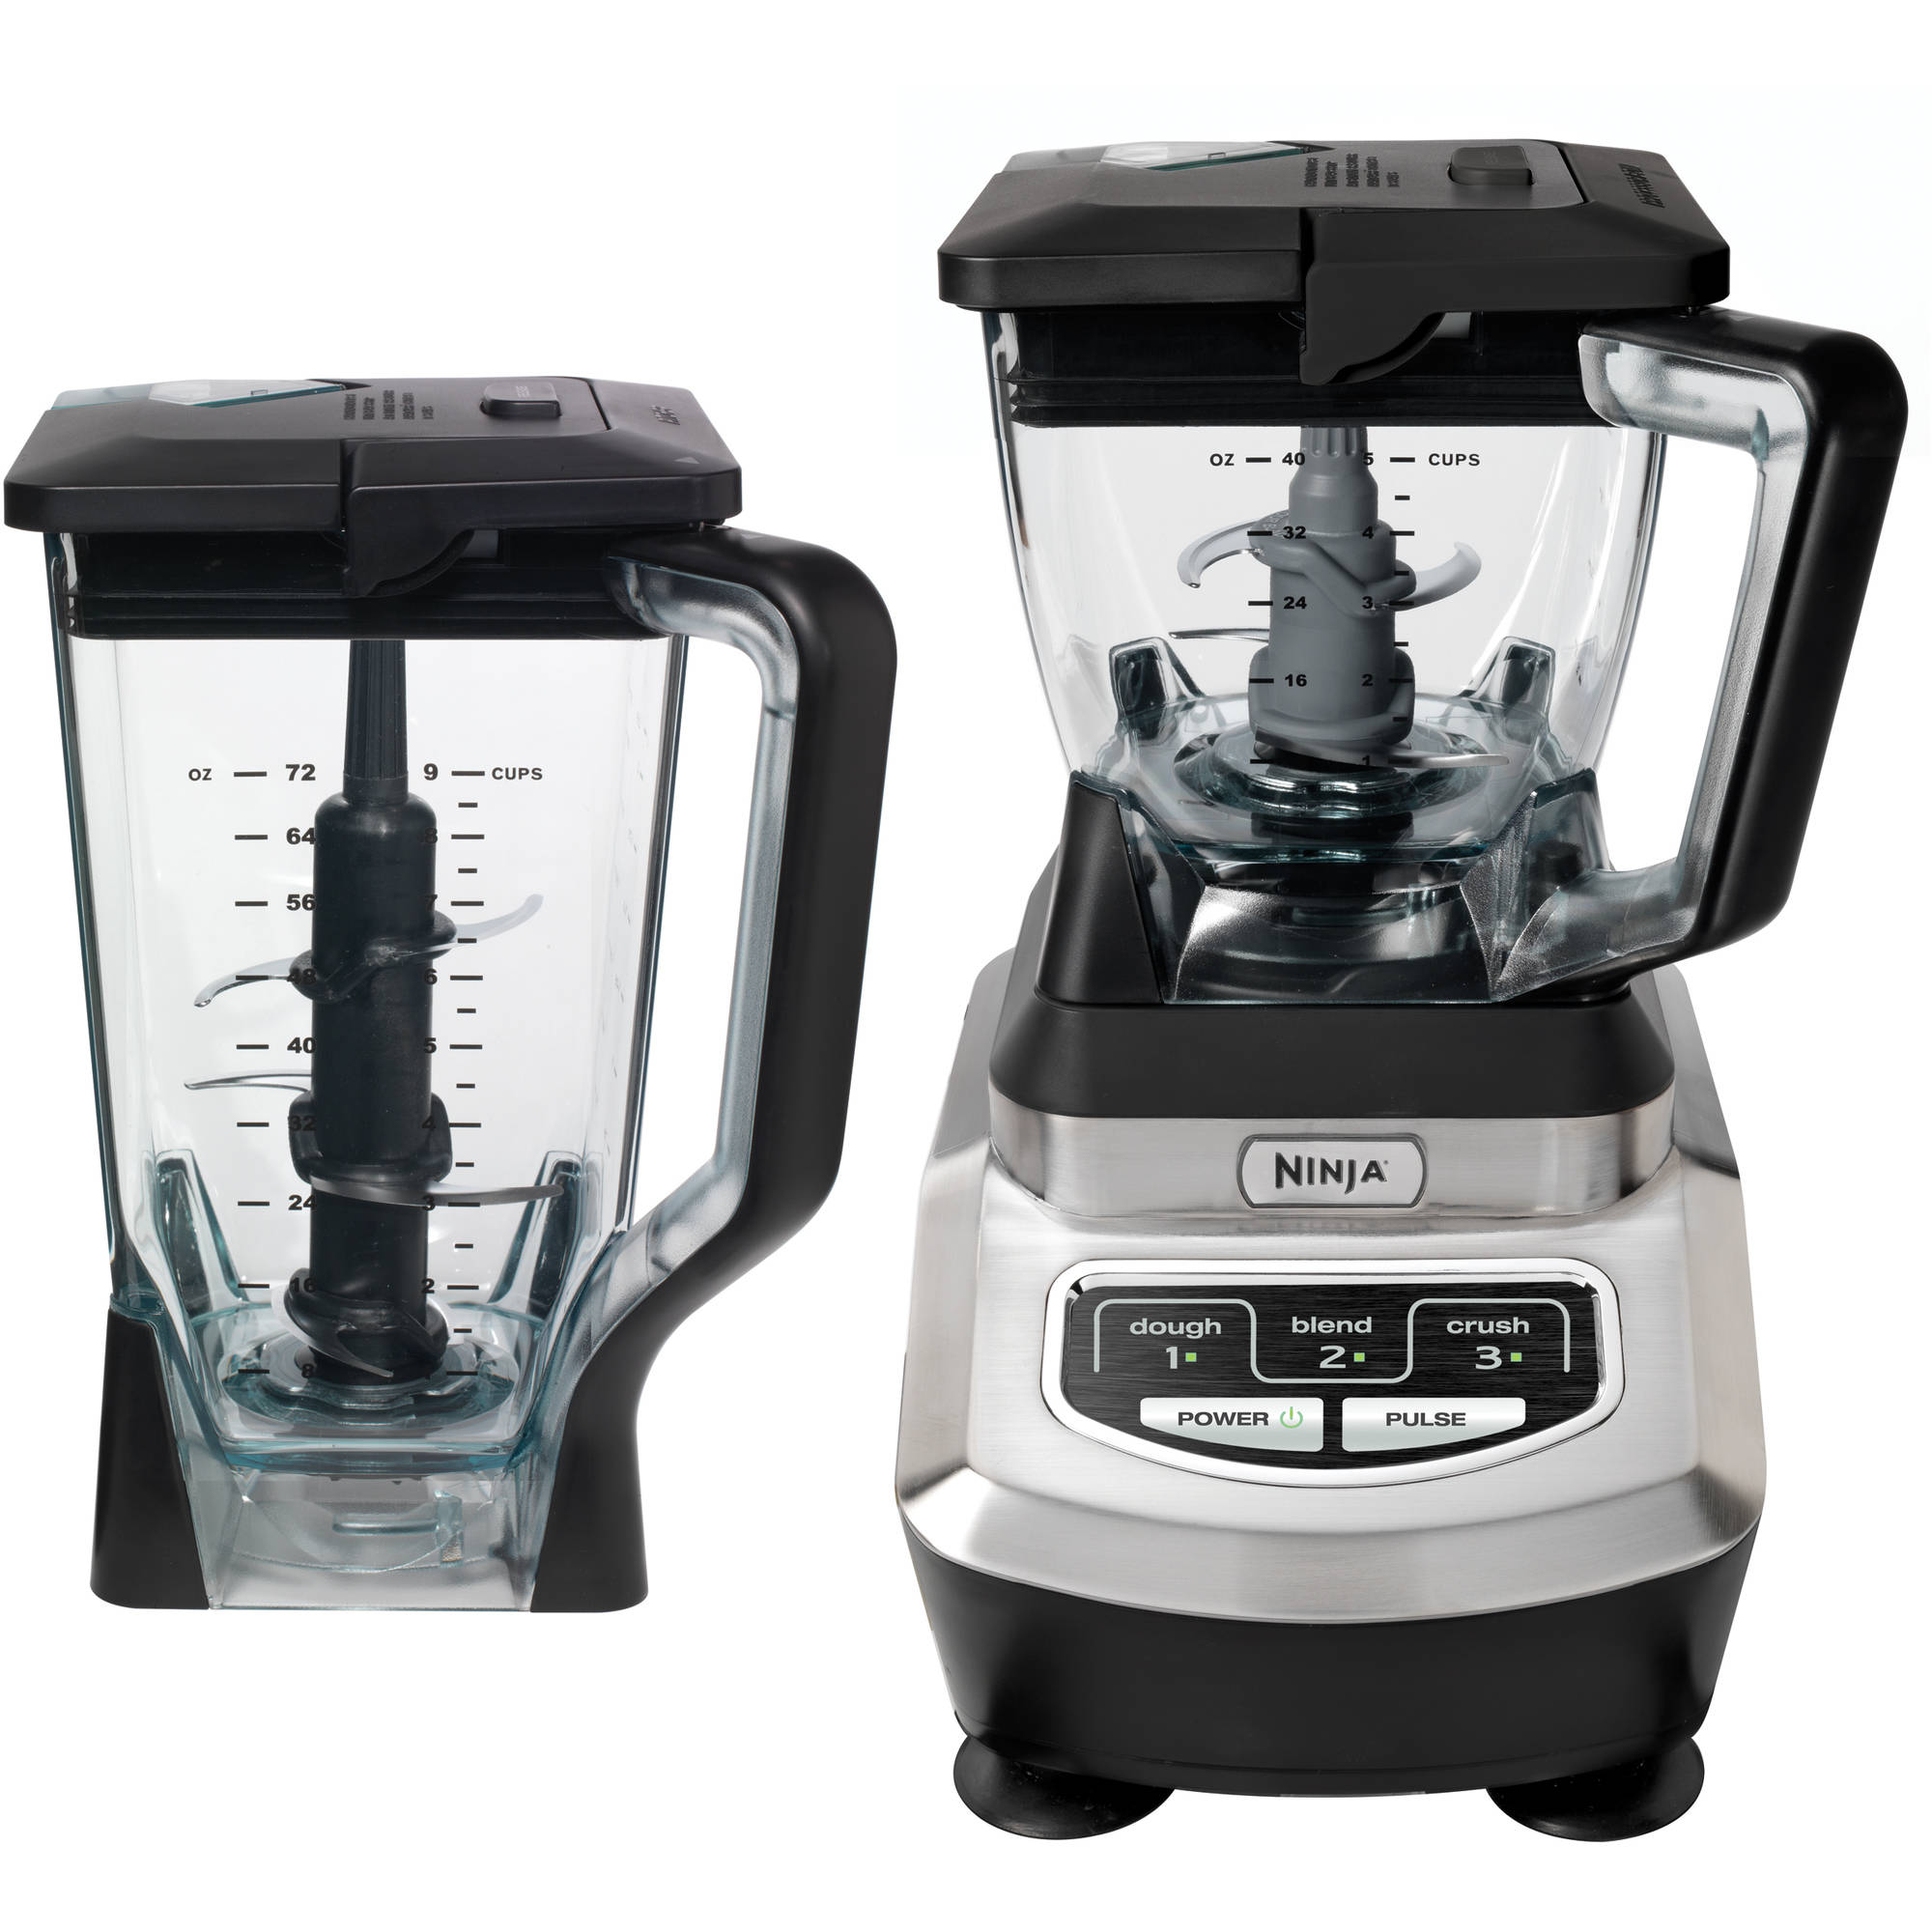 dining regarding blenders source kitchen com appliances juicers amp concept ninja system your small of kohls own professional perfect decorate from best